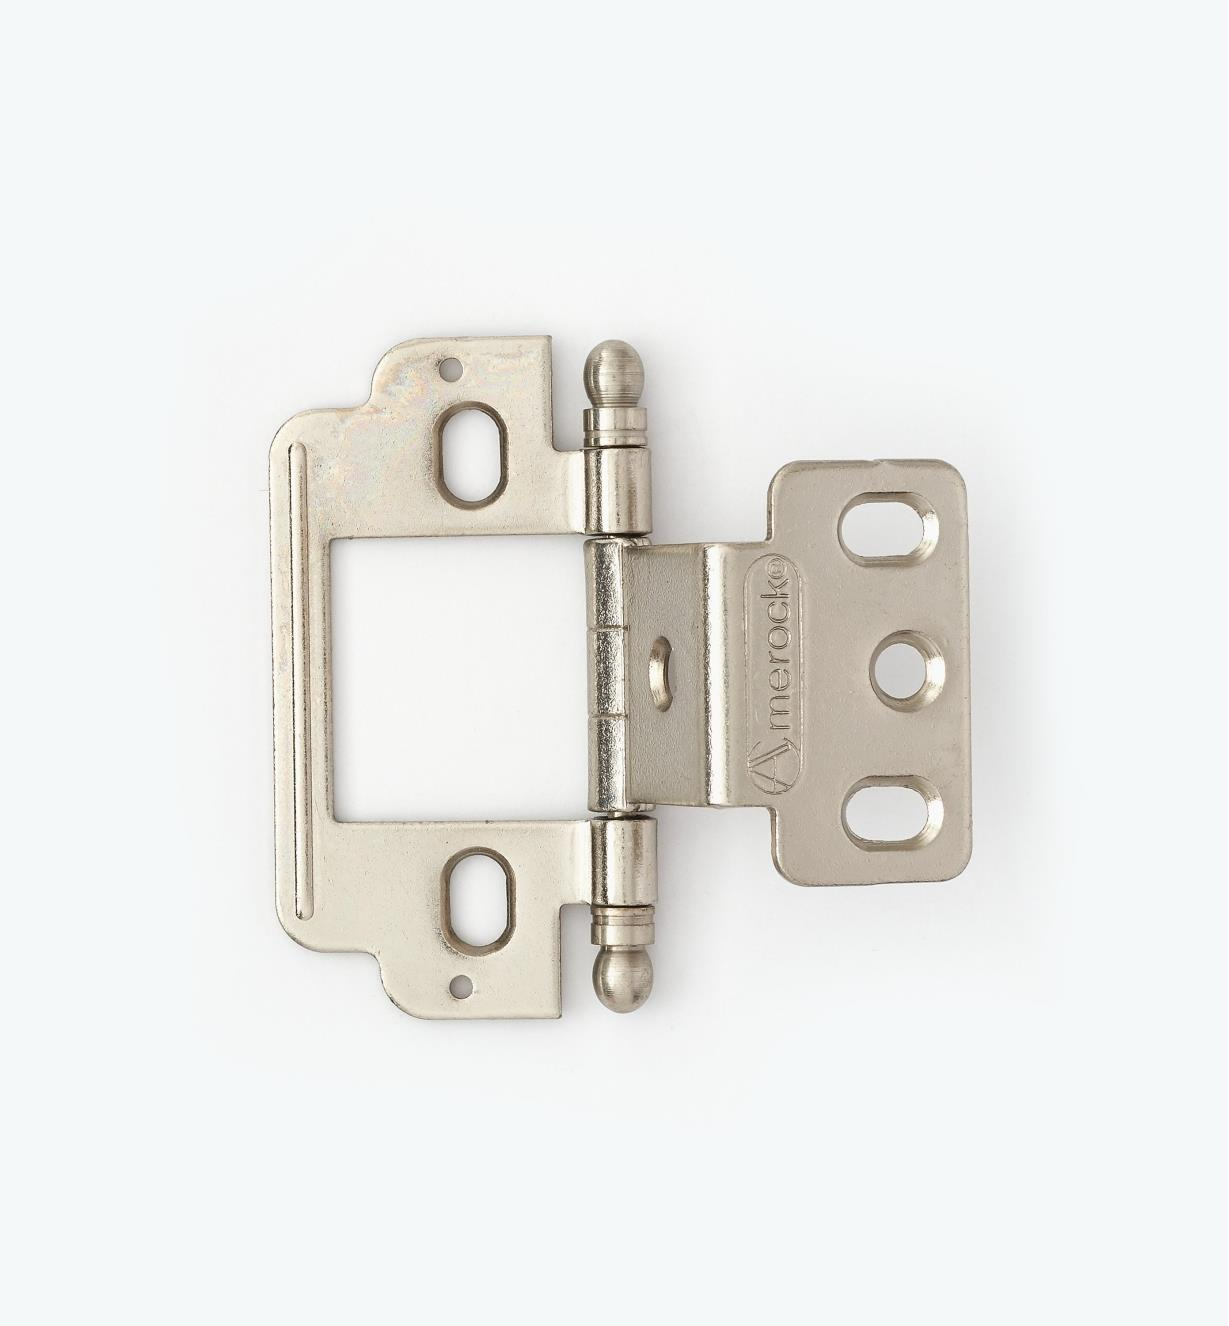 01H3142 - Partial-Wrap Hinge,Nickel Plate, Ball